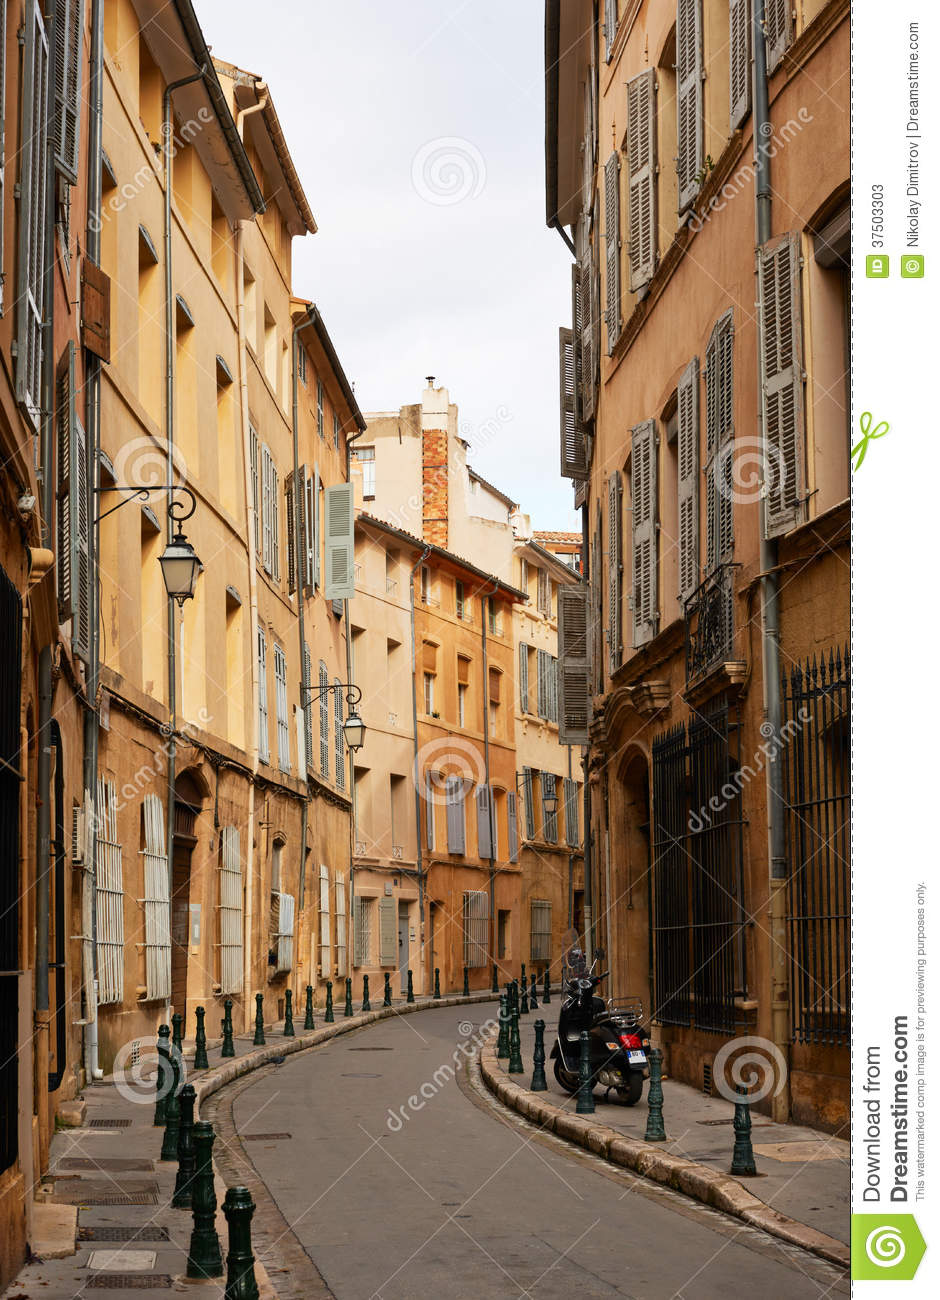 rue dans aix en provence image stock image du rural 37503303. Black Bedroom Furniture Sets. Home Design Ideas